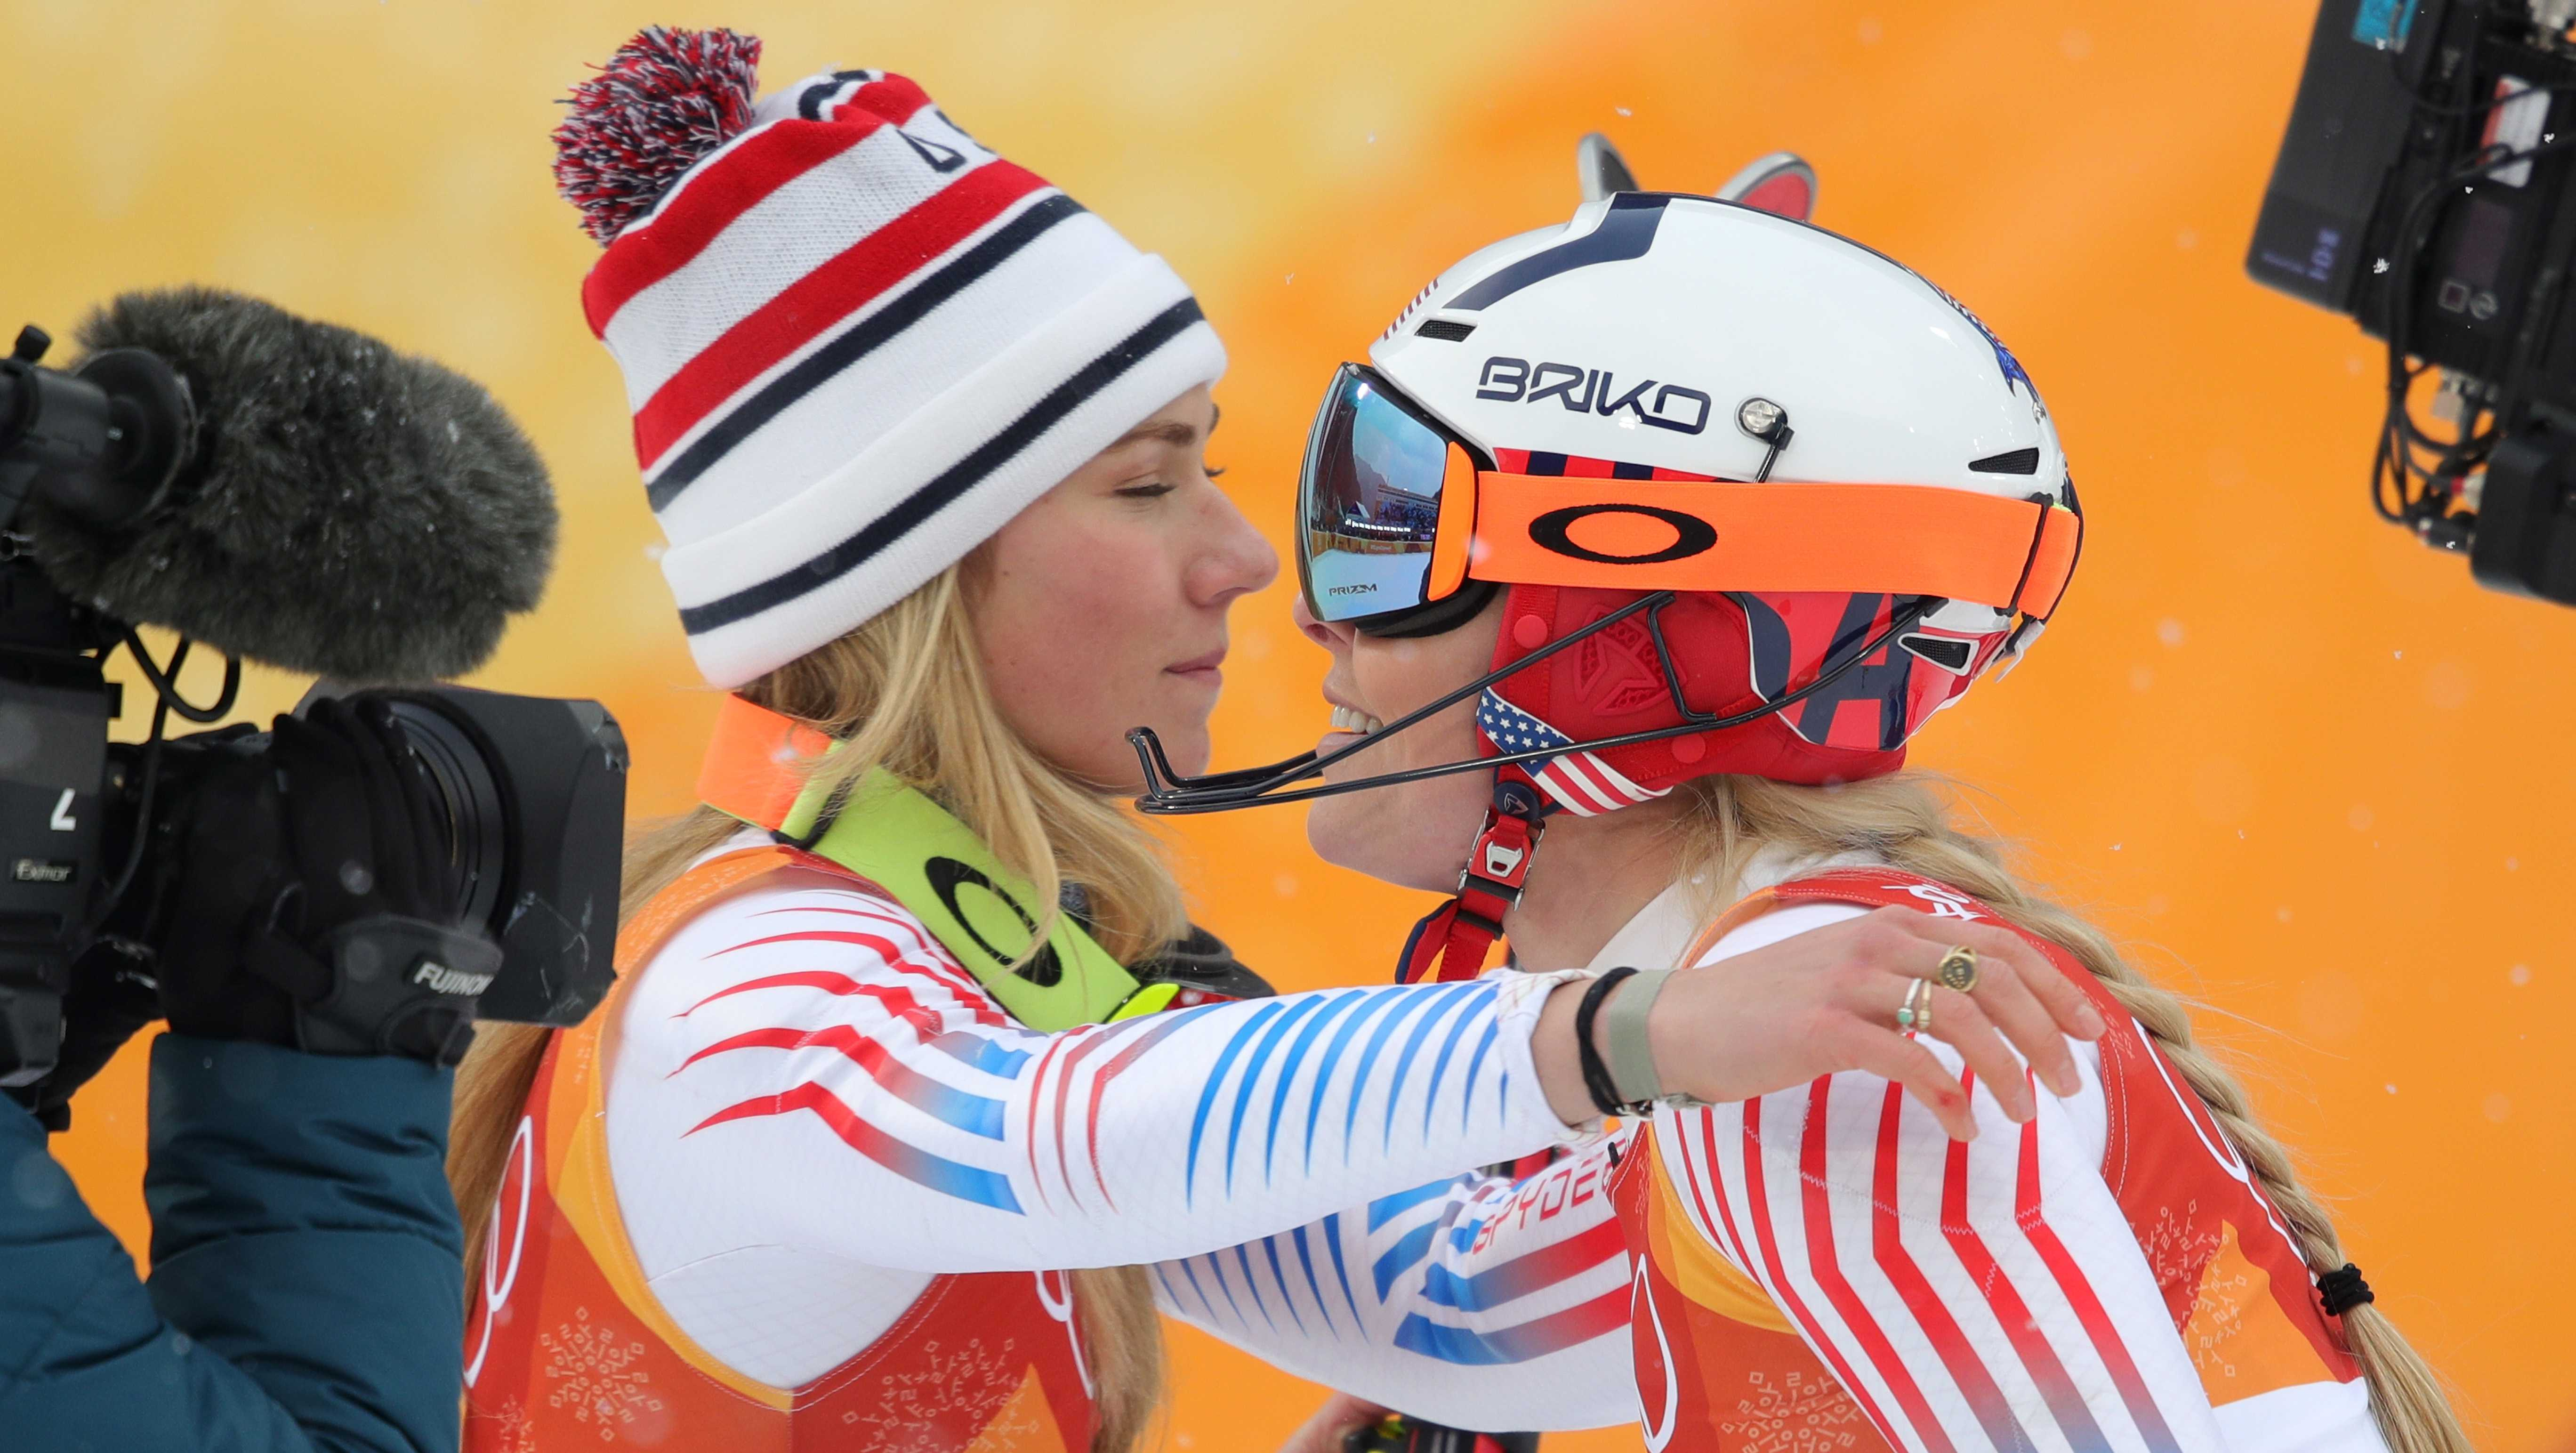 Silver medalist, Mikaela Shiffrin of the United States is congratulated by Lindsey Vonn of the United States during the Ladies' Alpine Combined on day thirteen of the PyeongChang 2018 Winter Olympic Games at Yongpyong Alpine Centre on February 22, 2018 in Pyeongchang-gun, South Korea.